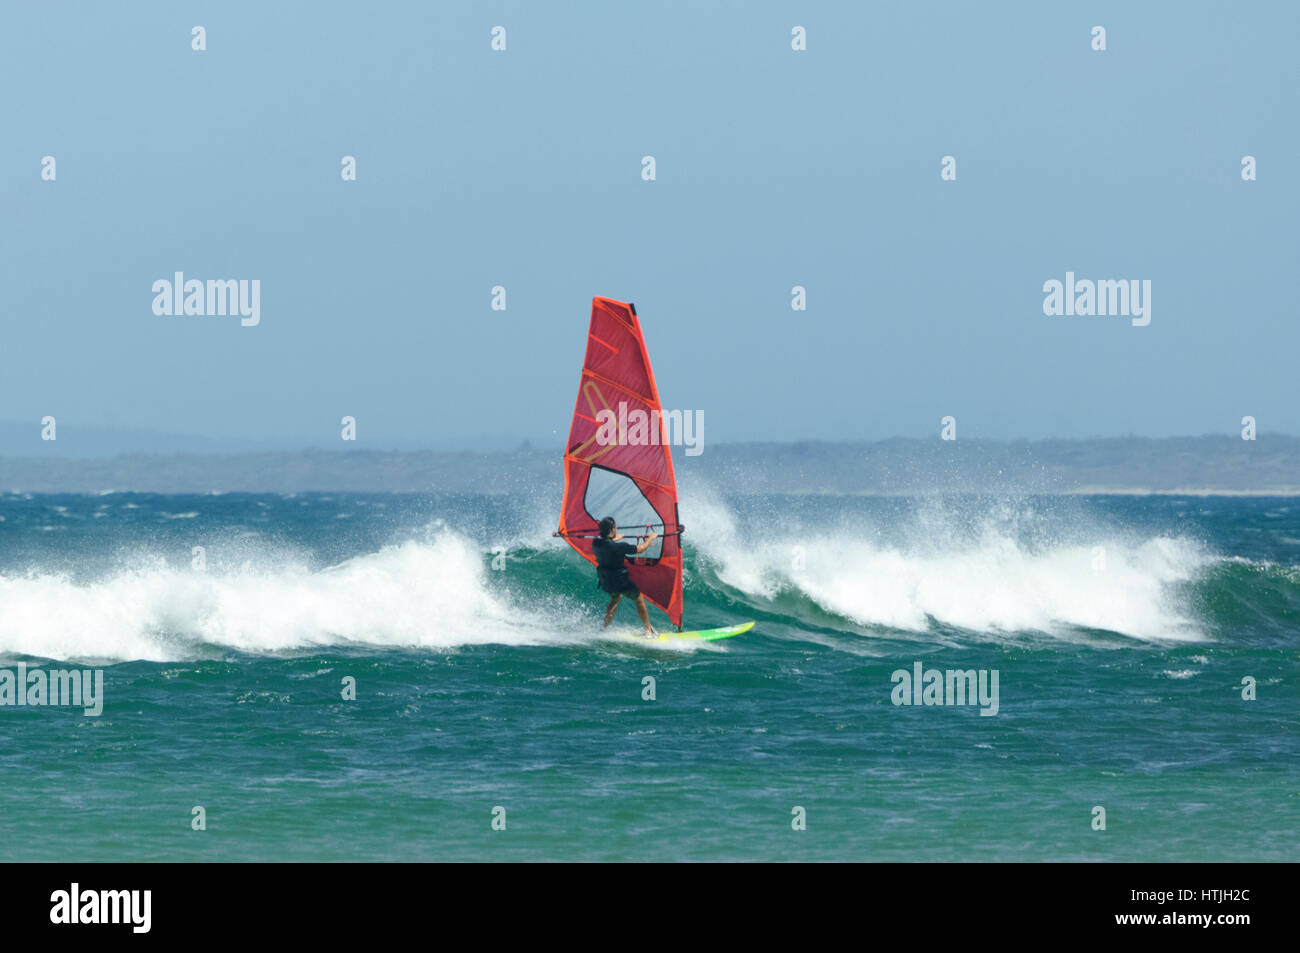 Windsurfer with colourful sails and surfboard at Seven Mile Beach, Gerroa, Illawarra Coast, New South Wales, NSW, - Stock Image